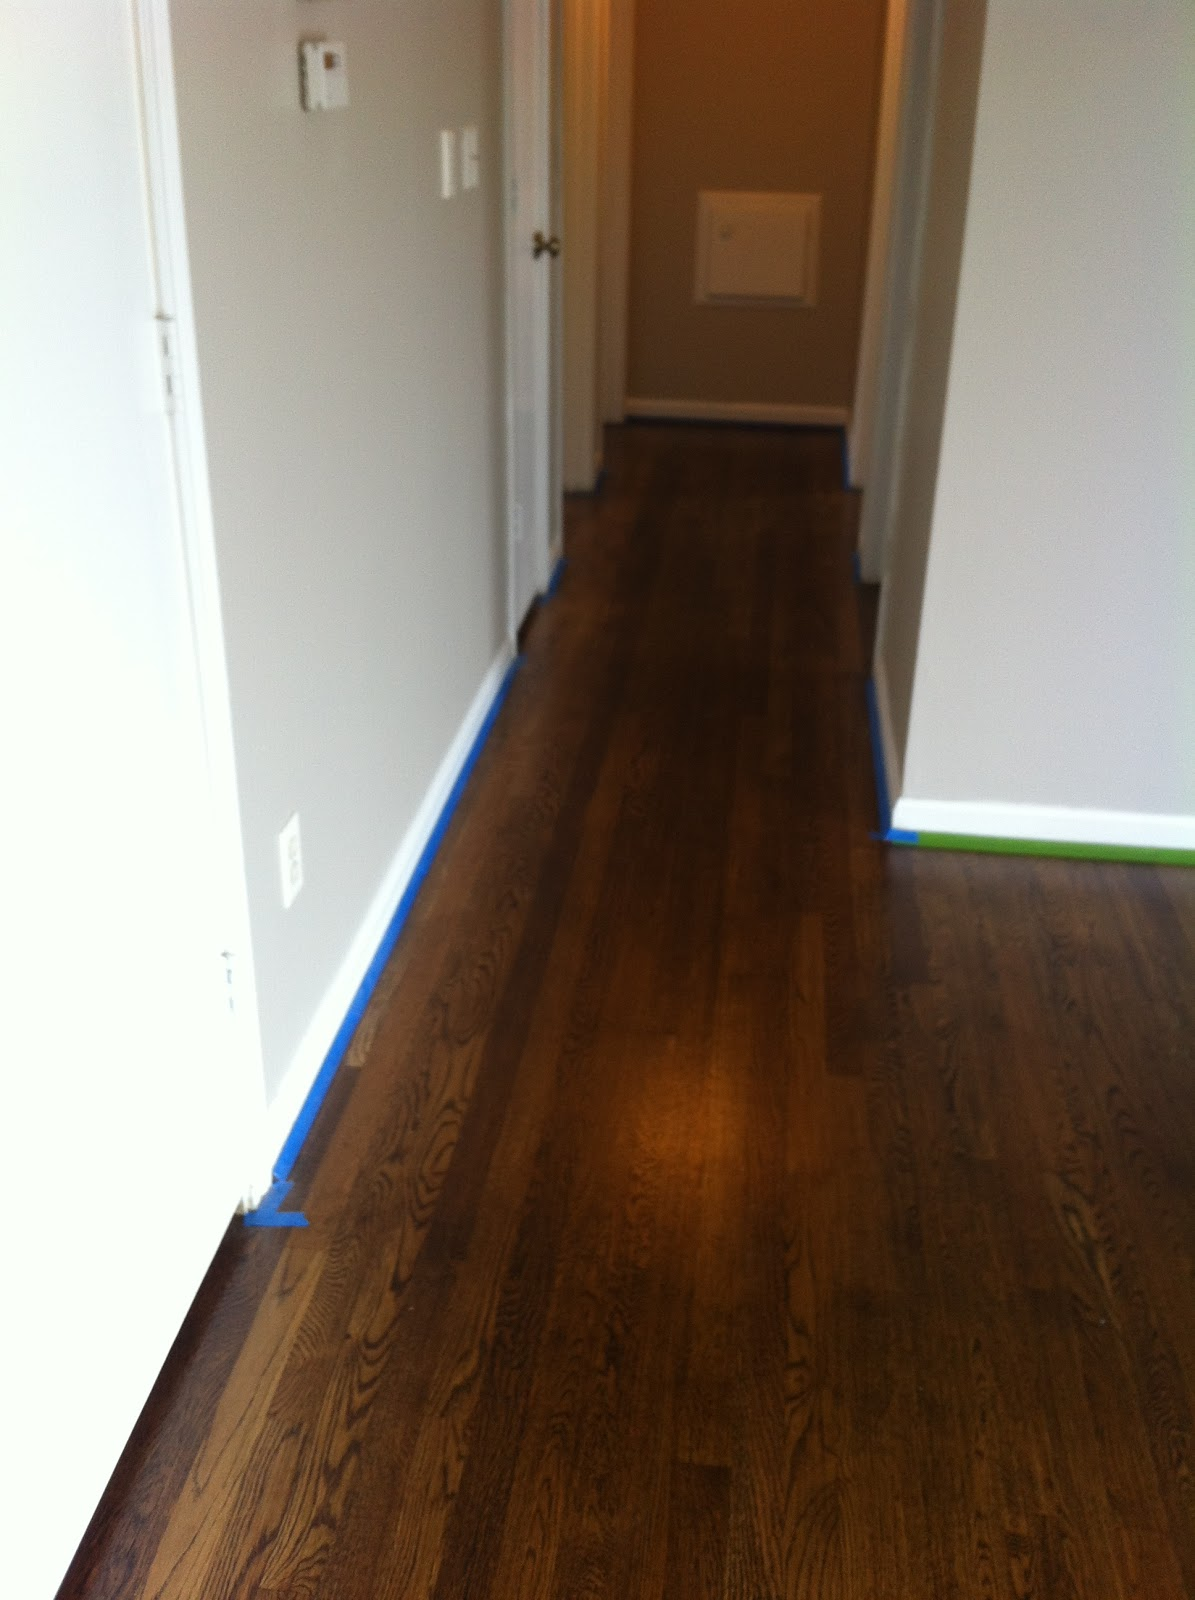 How to remove paint from hardwood floors -  Get Rid Of The Line From Where The Paint And Carpet Met And Wiped Down The Baseboards Before Painting Them A Crisp White In Semi Gloss So They Are Very